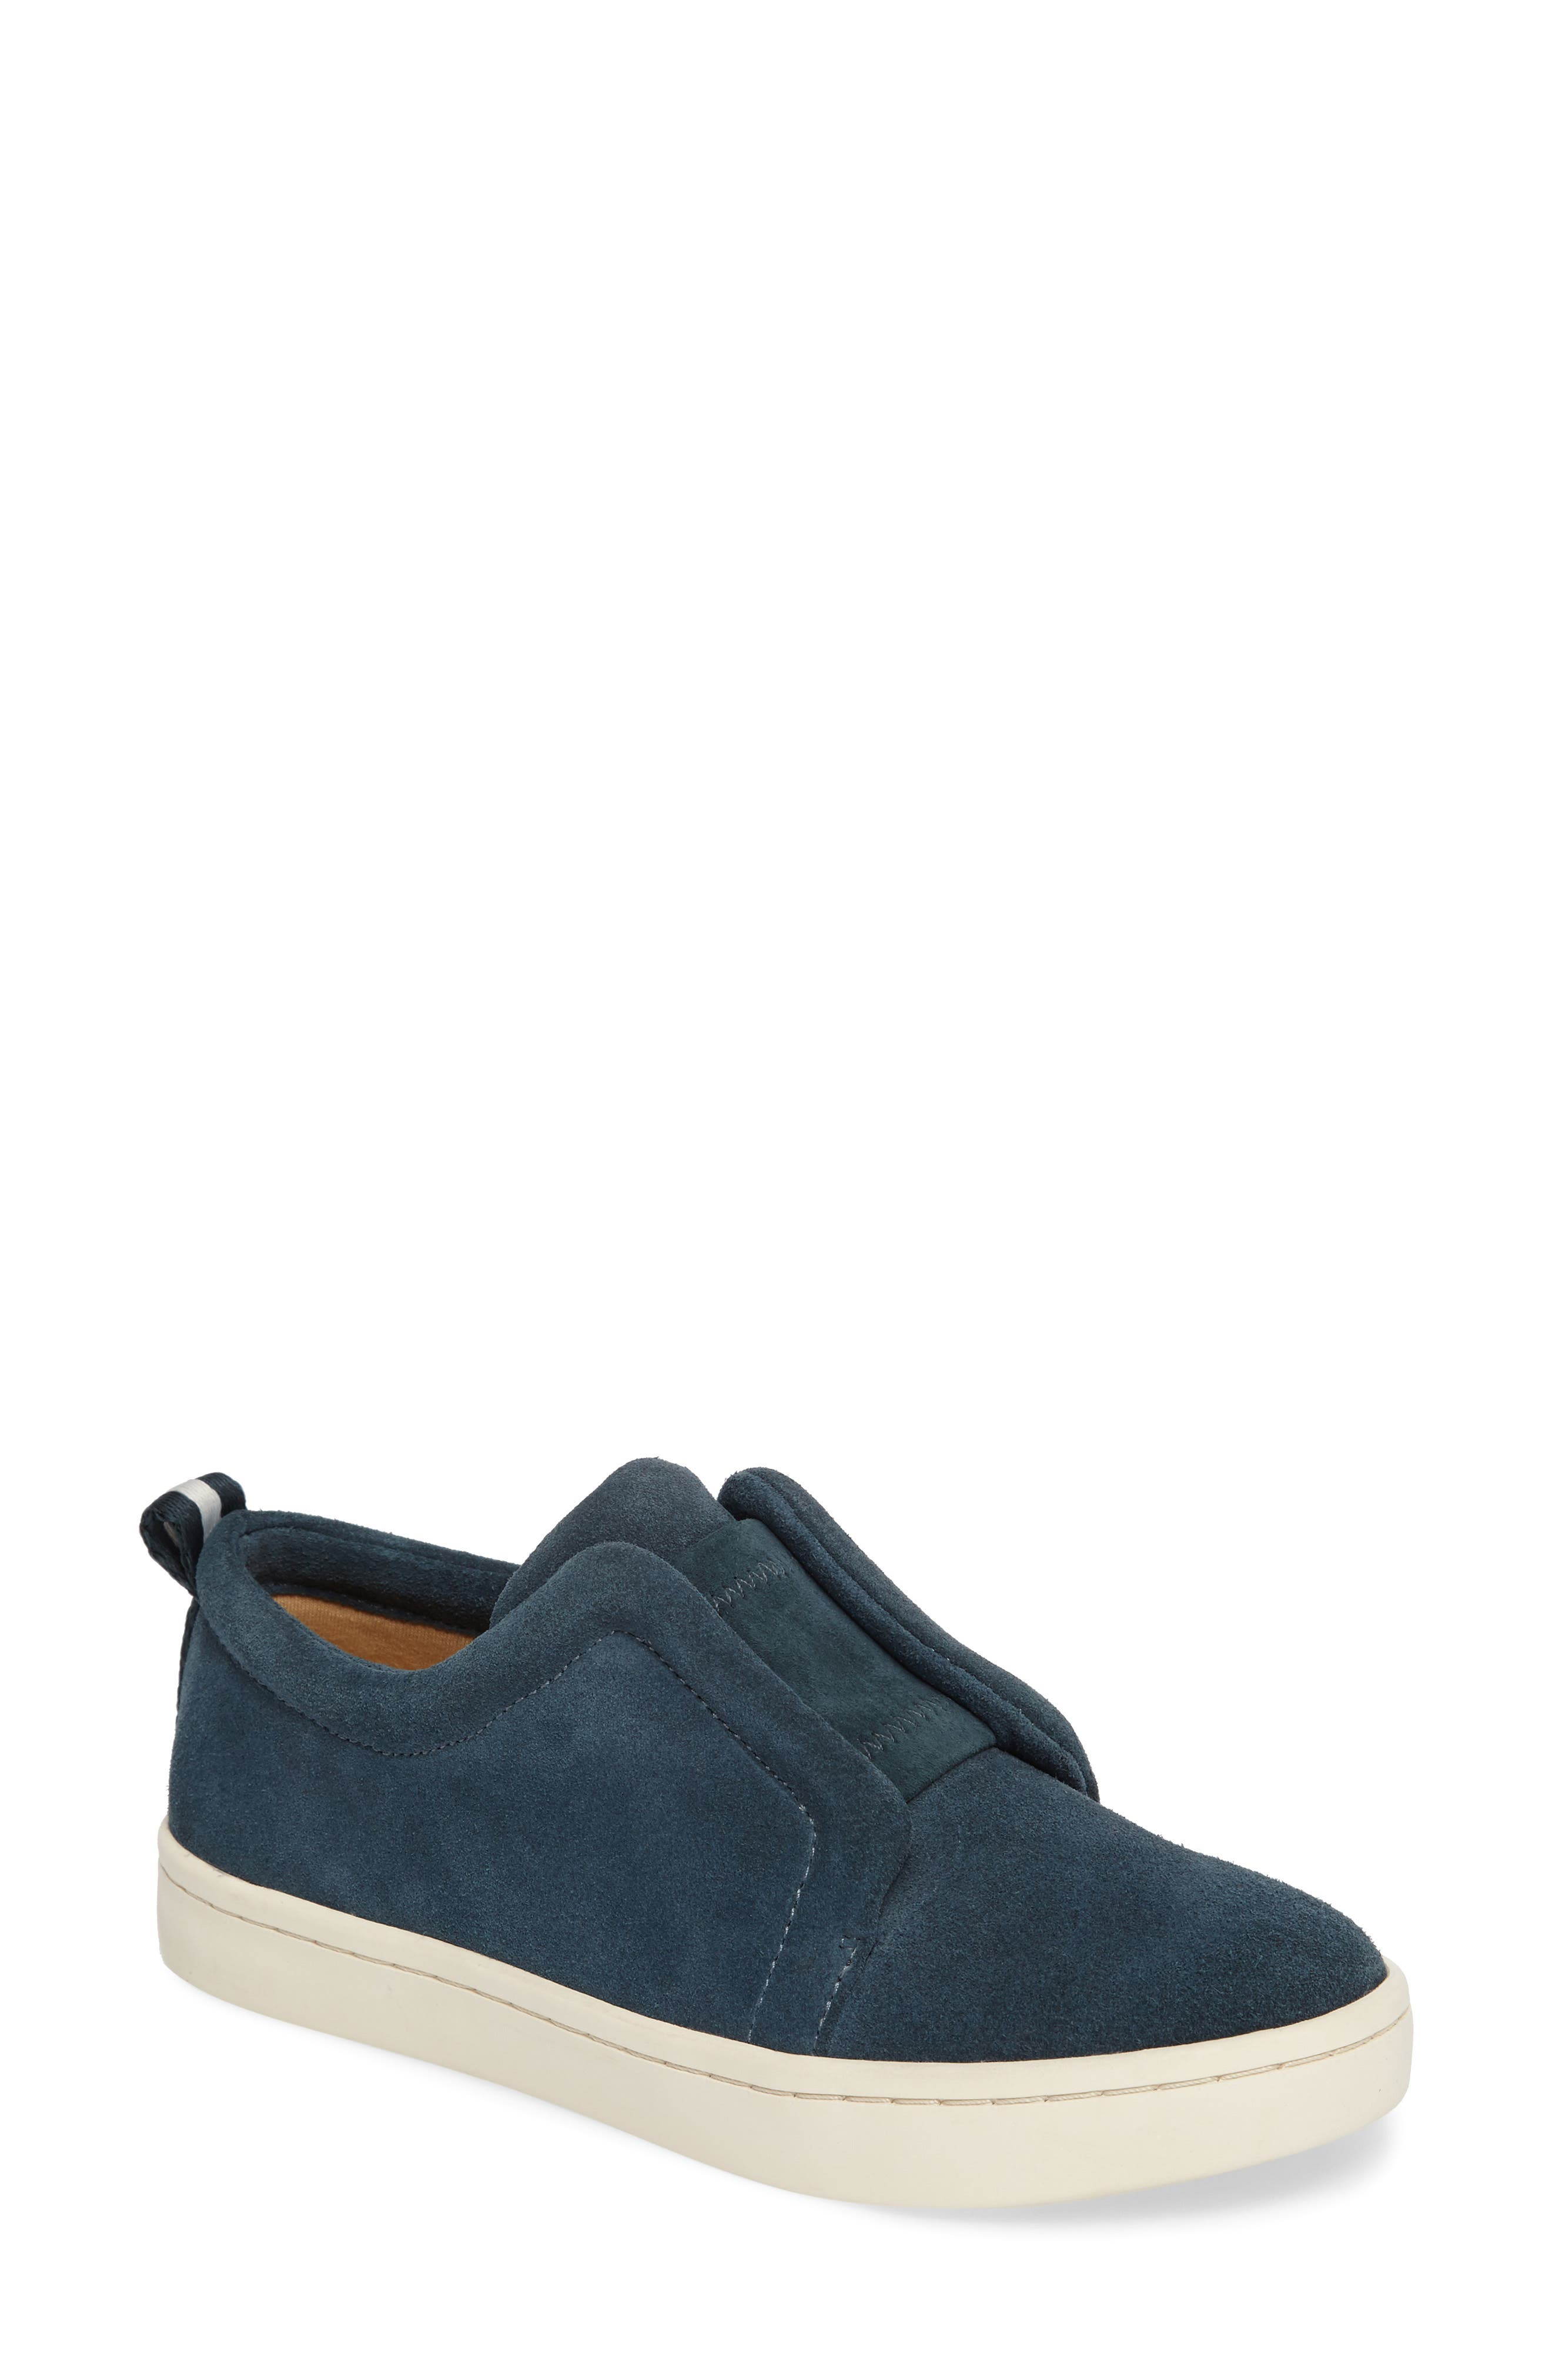 Splendid Dagny Slip-On Sneaker (Women)